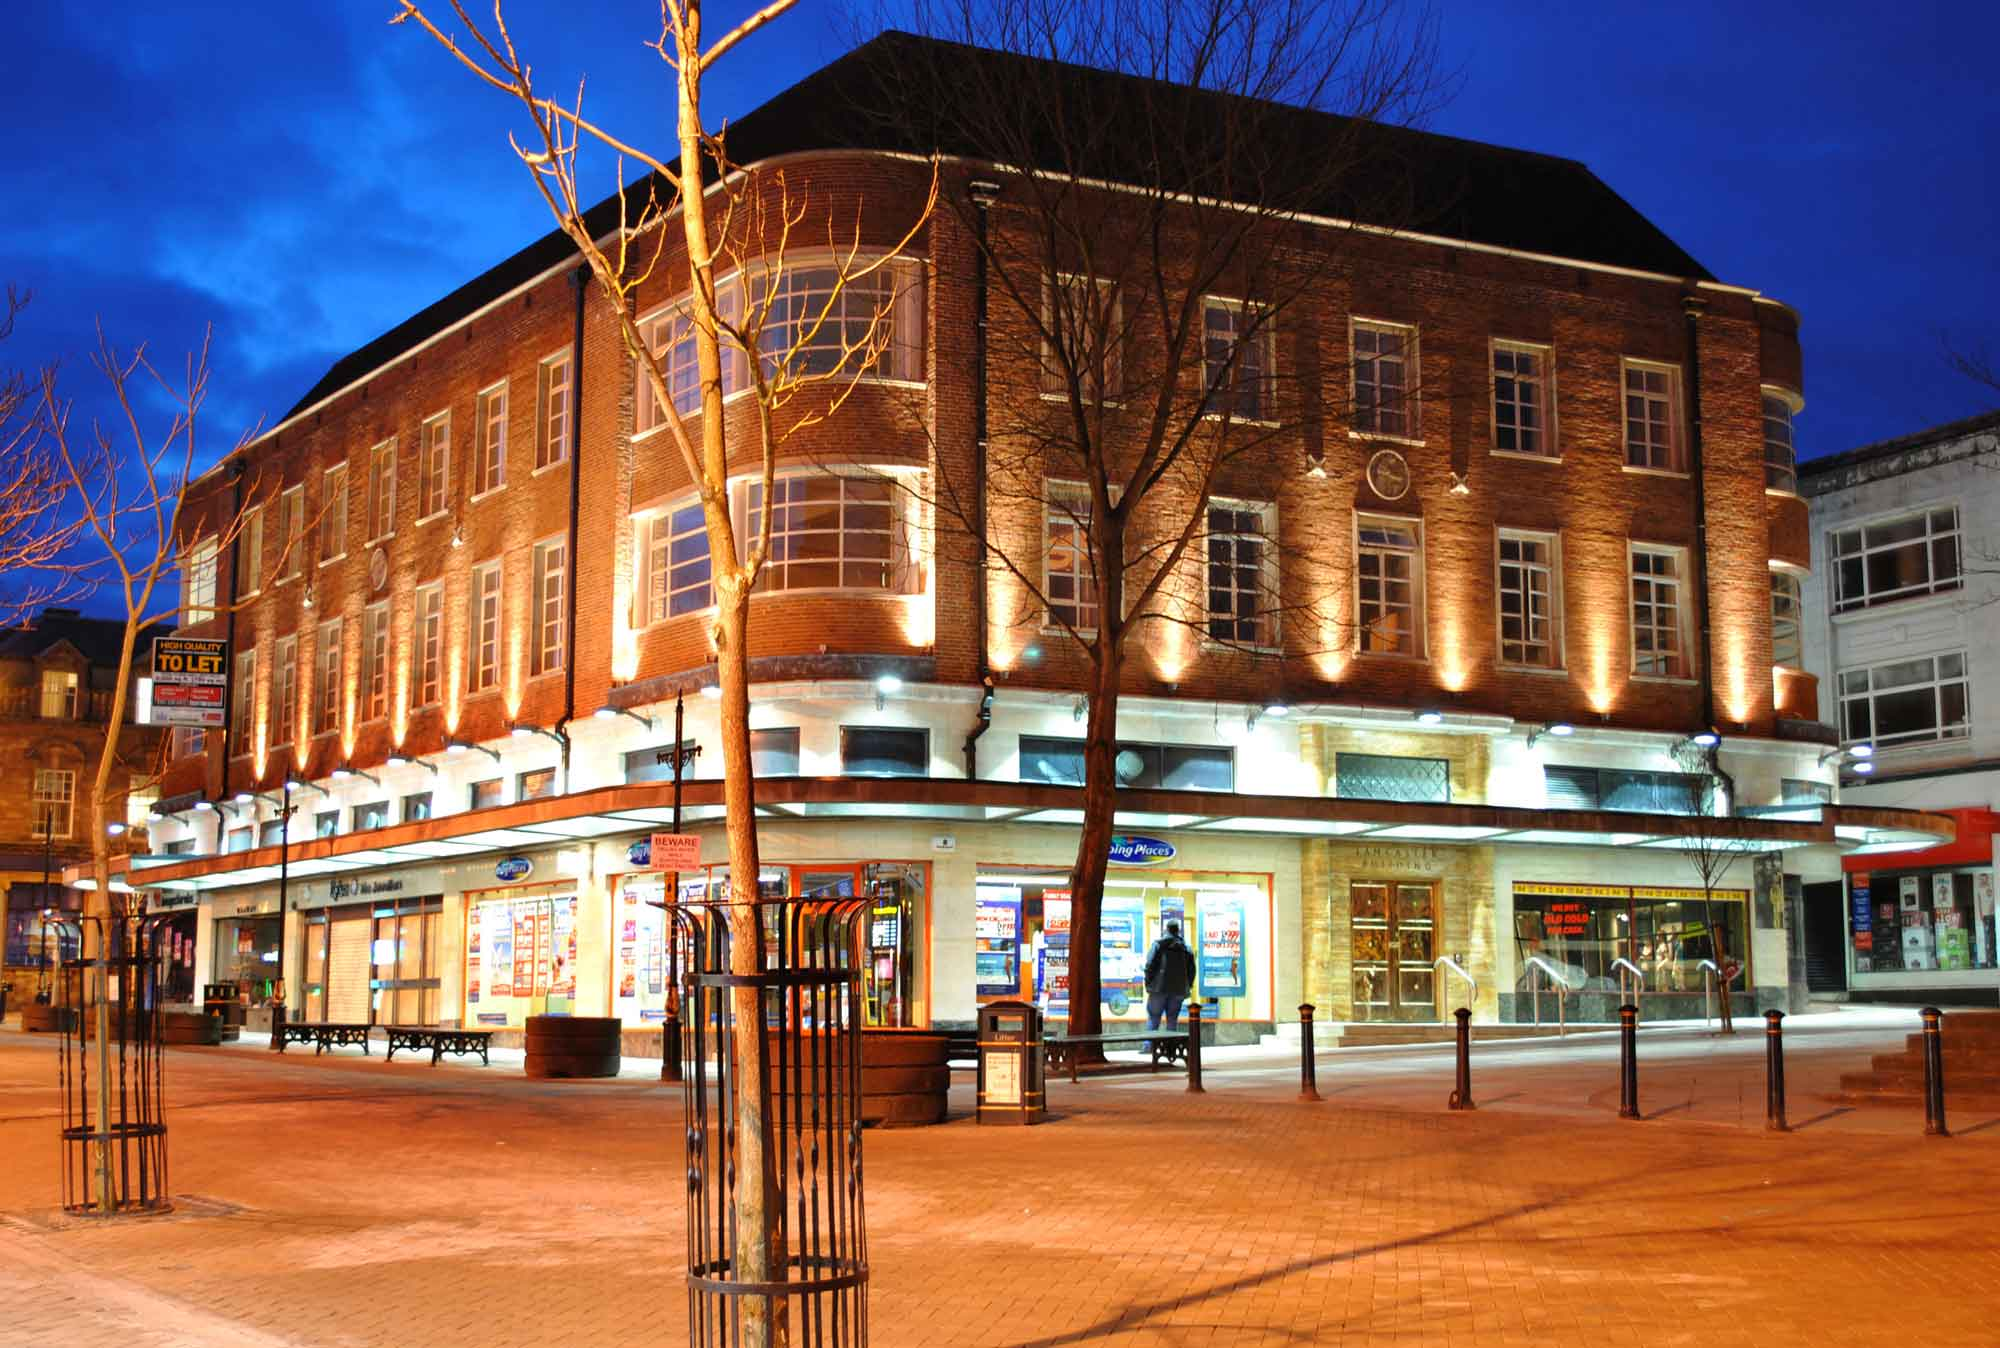 lancaster building in newcastle under lyme night